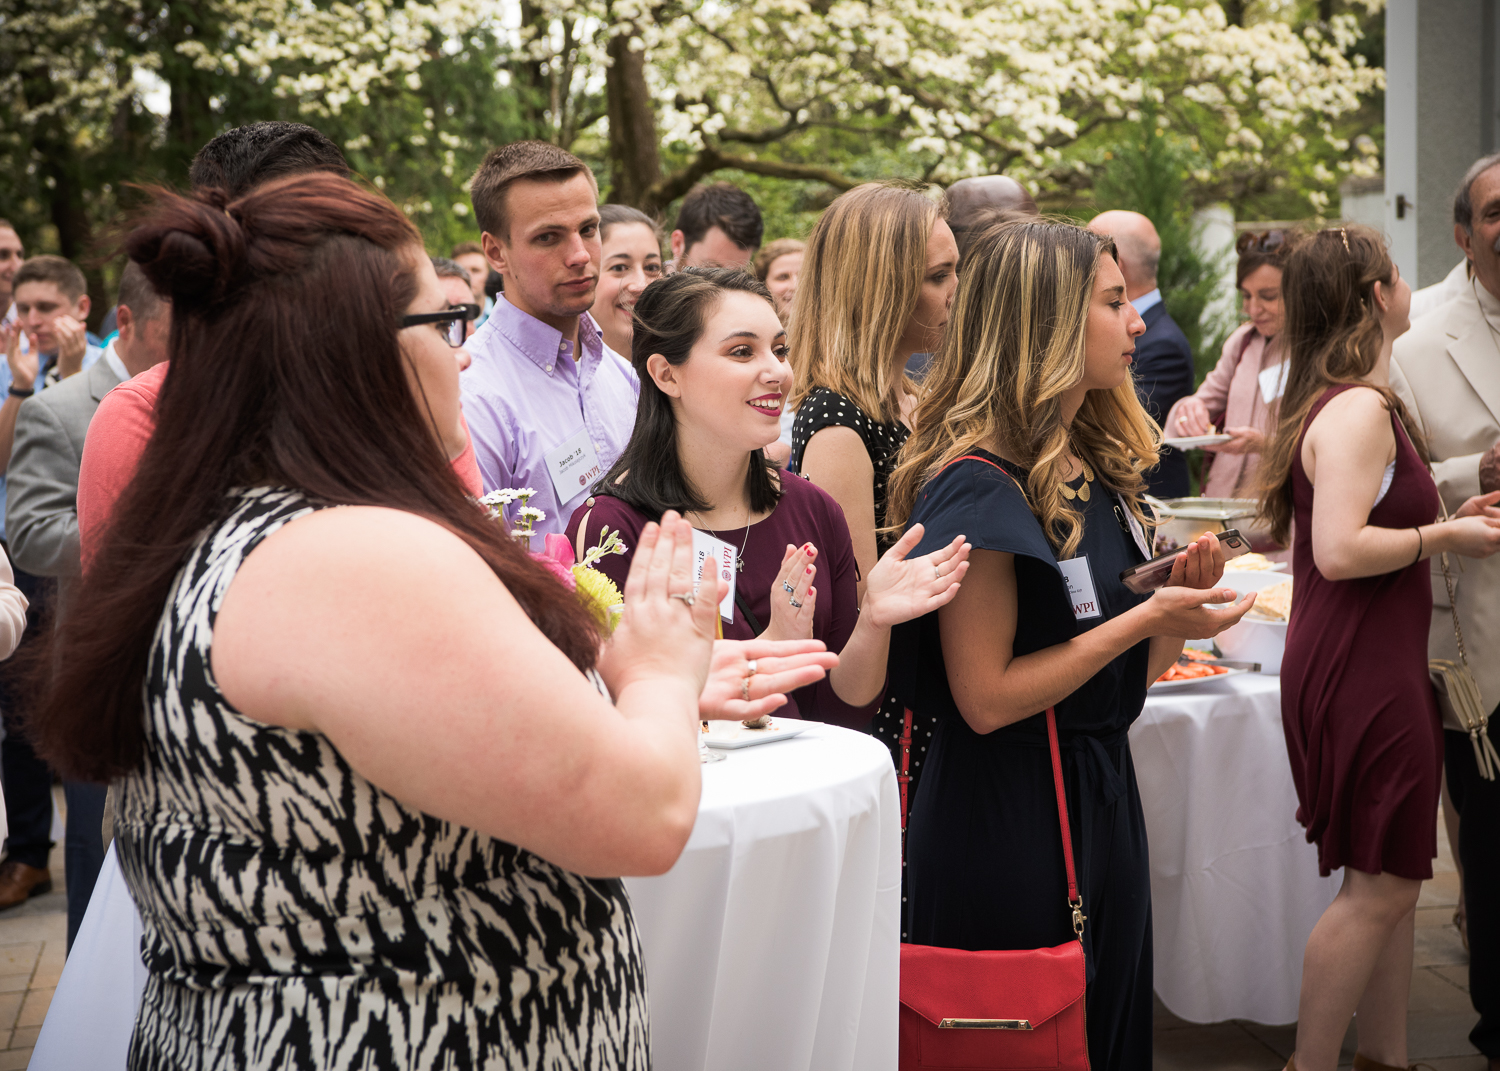 Students clapping at Senior Class Gift reception